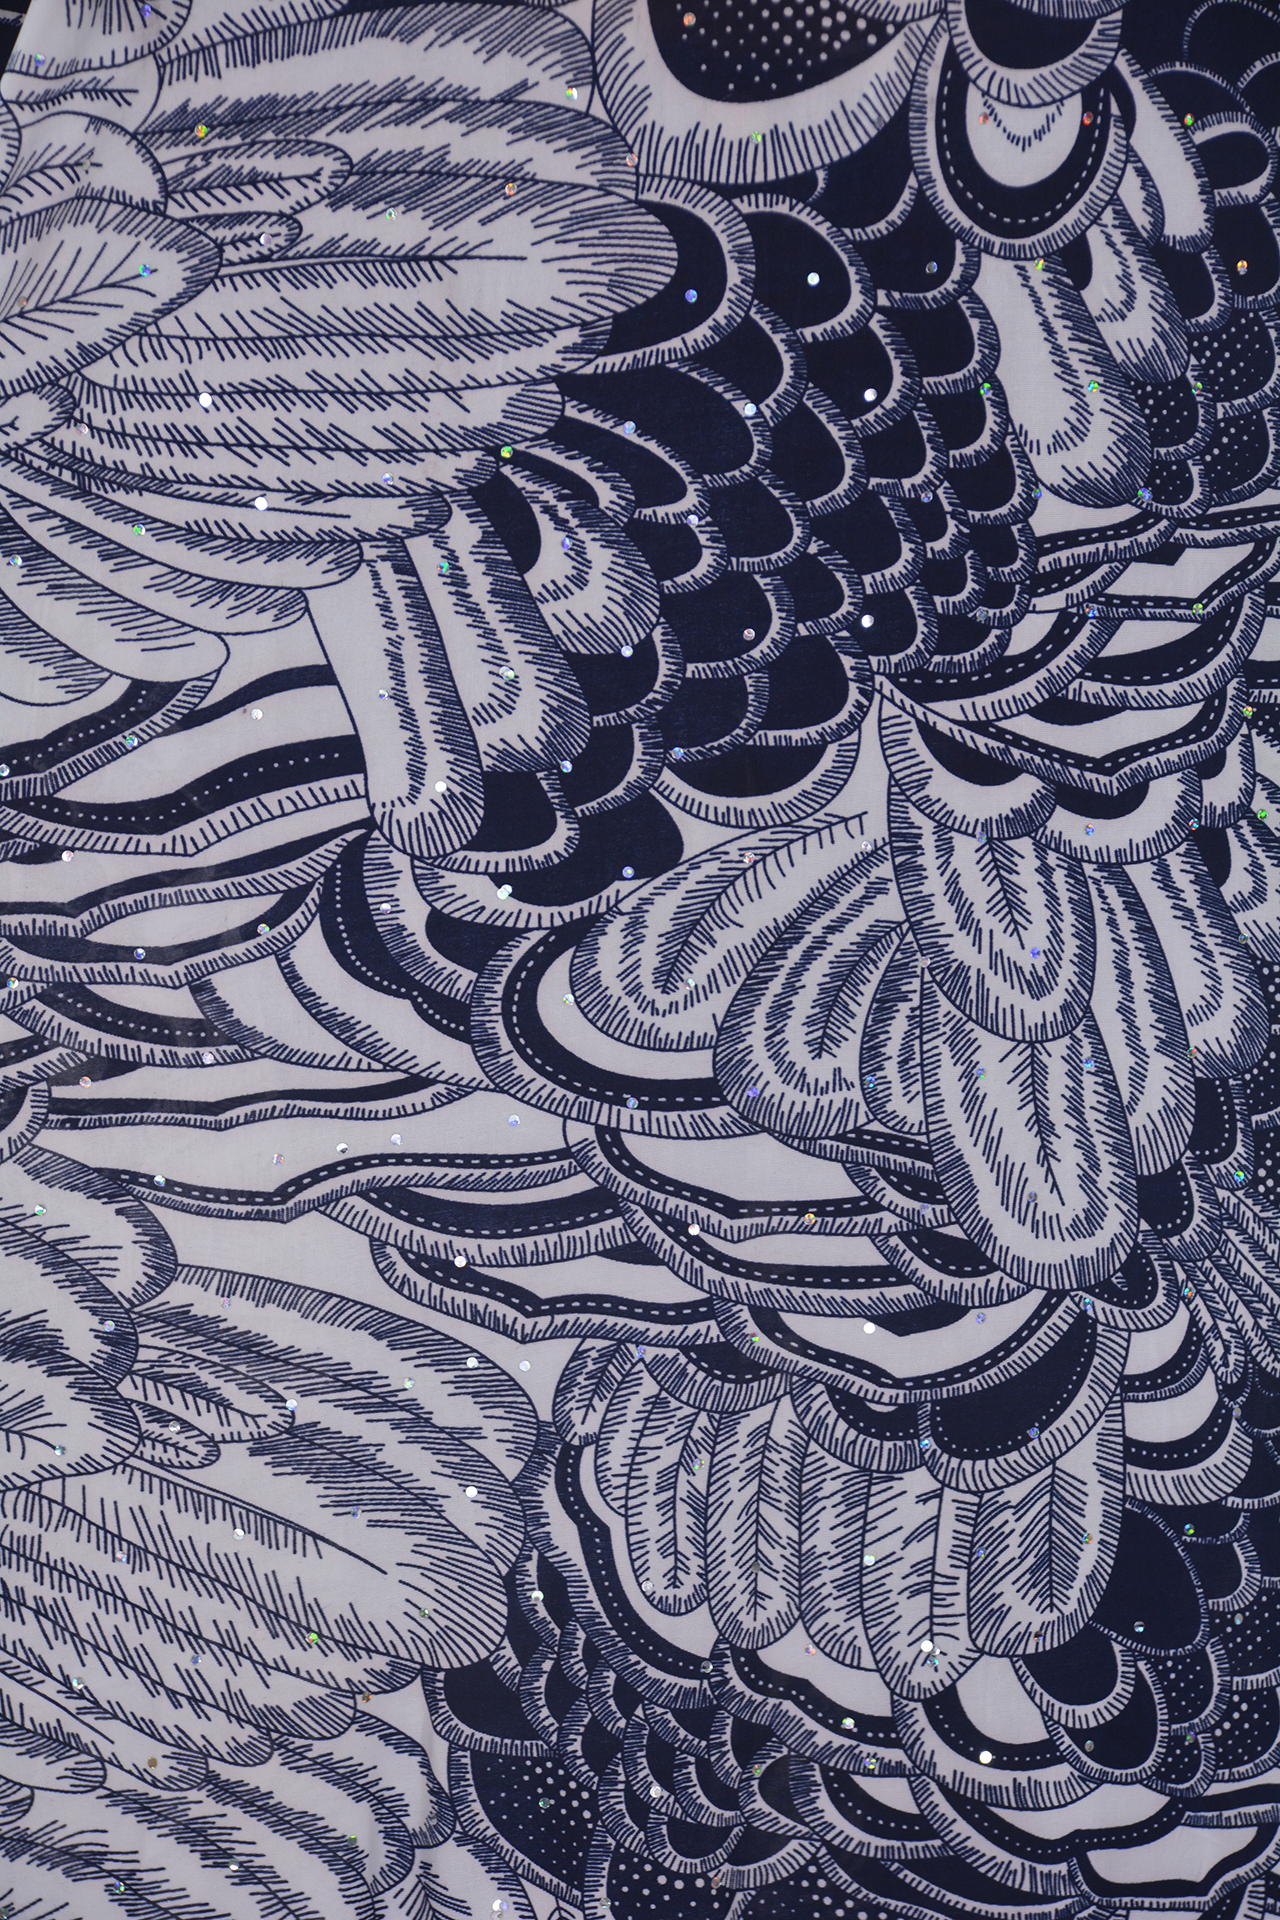 Abstract Feathers and Scales Sparkles Print 3